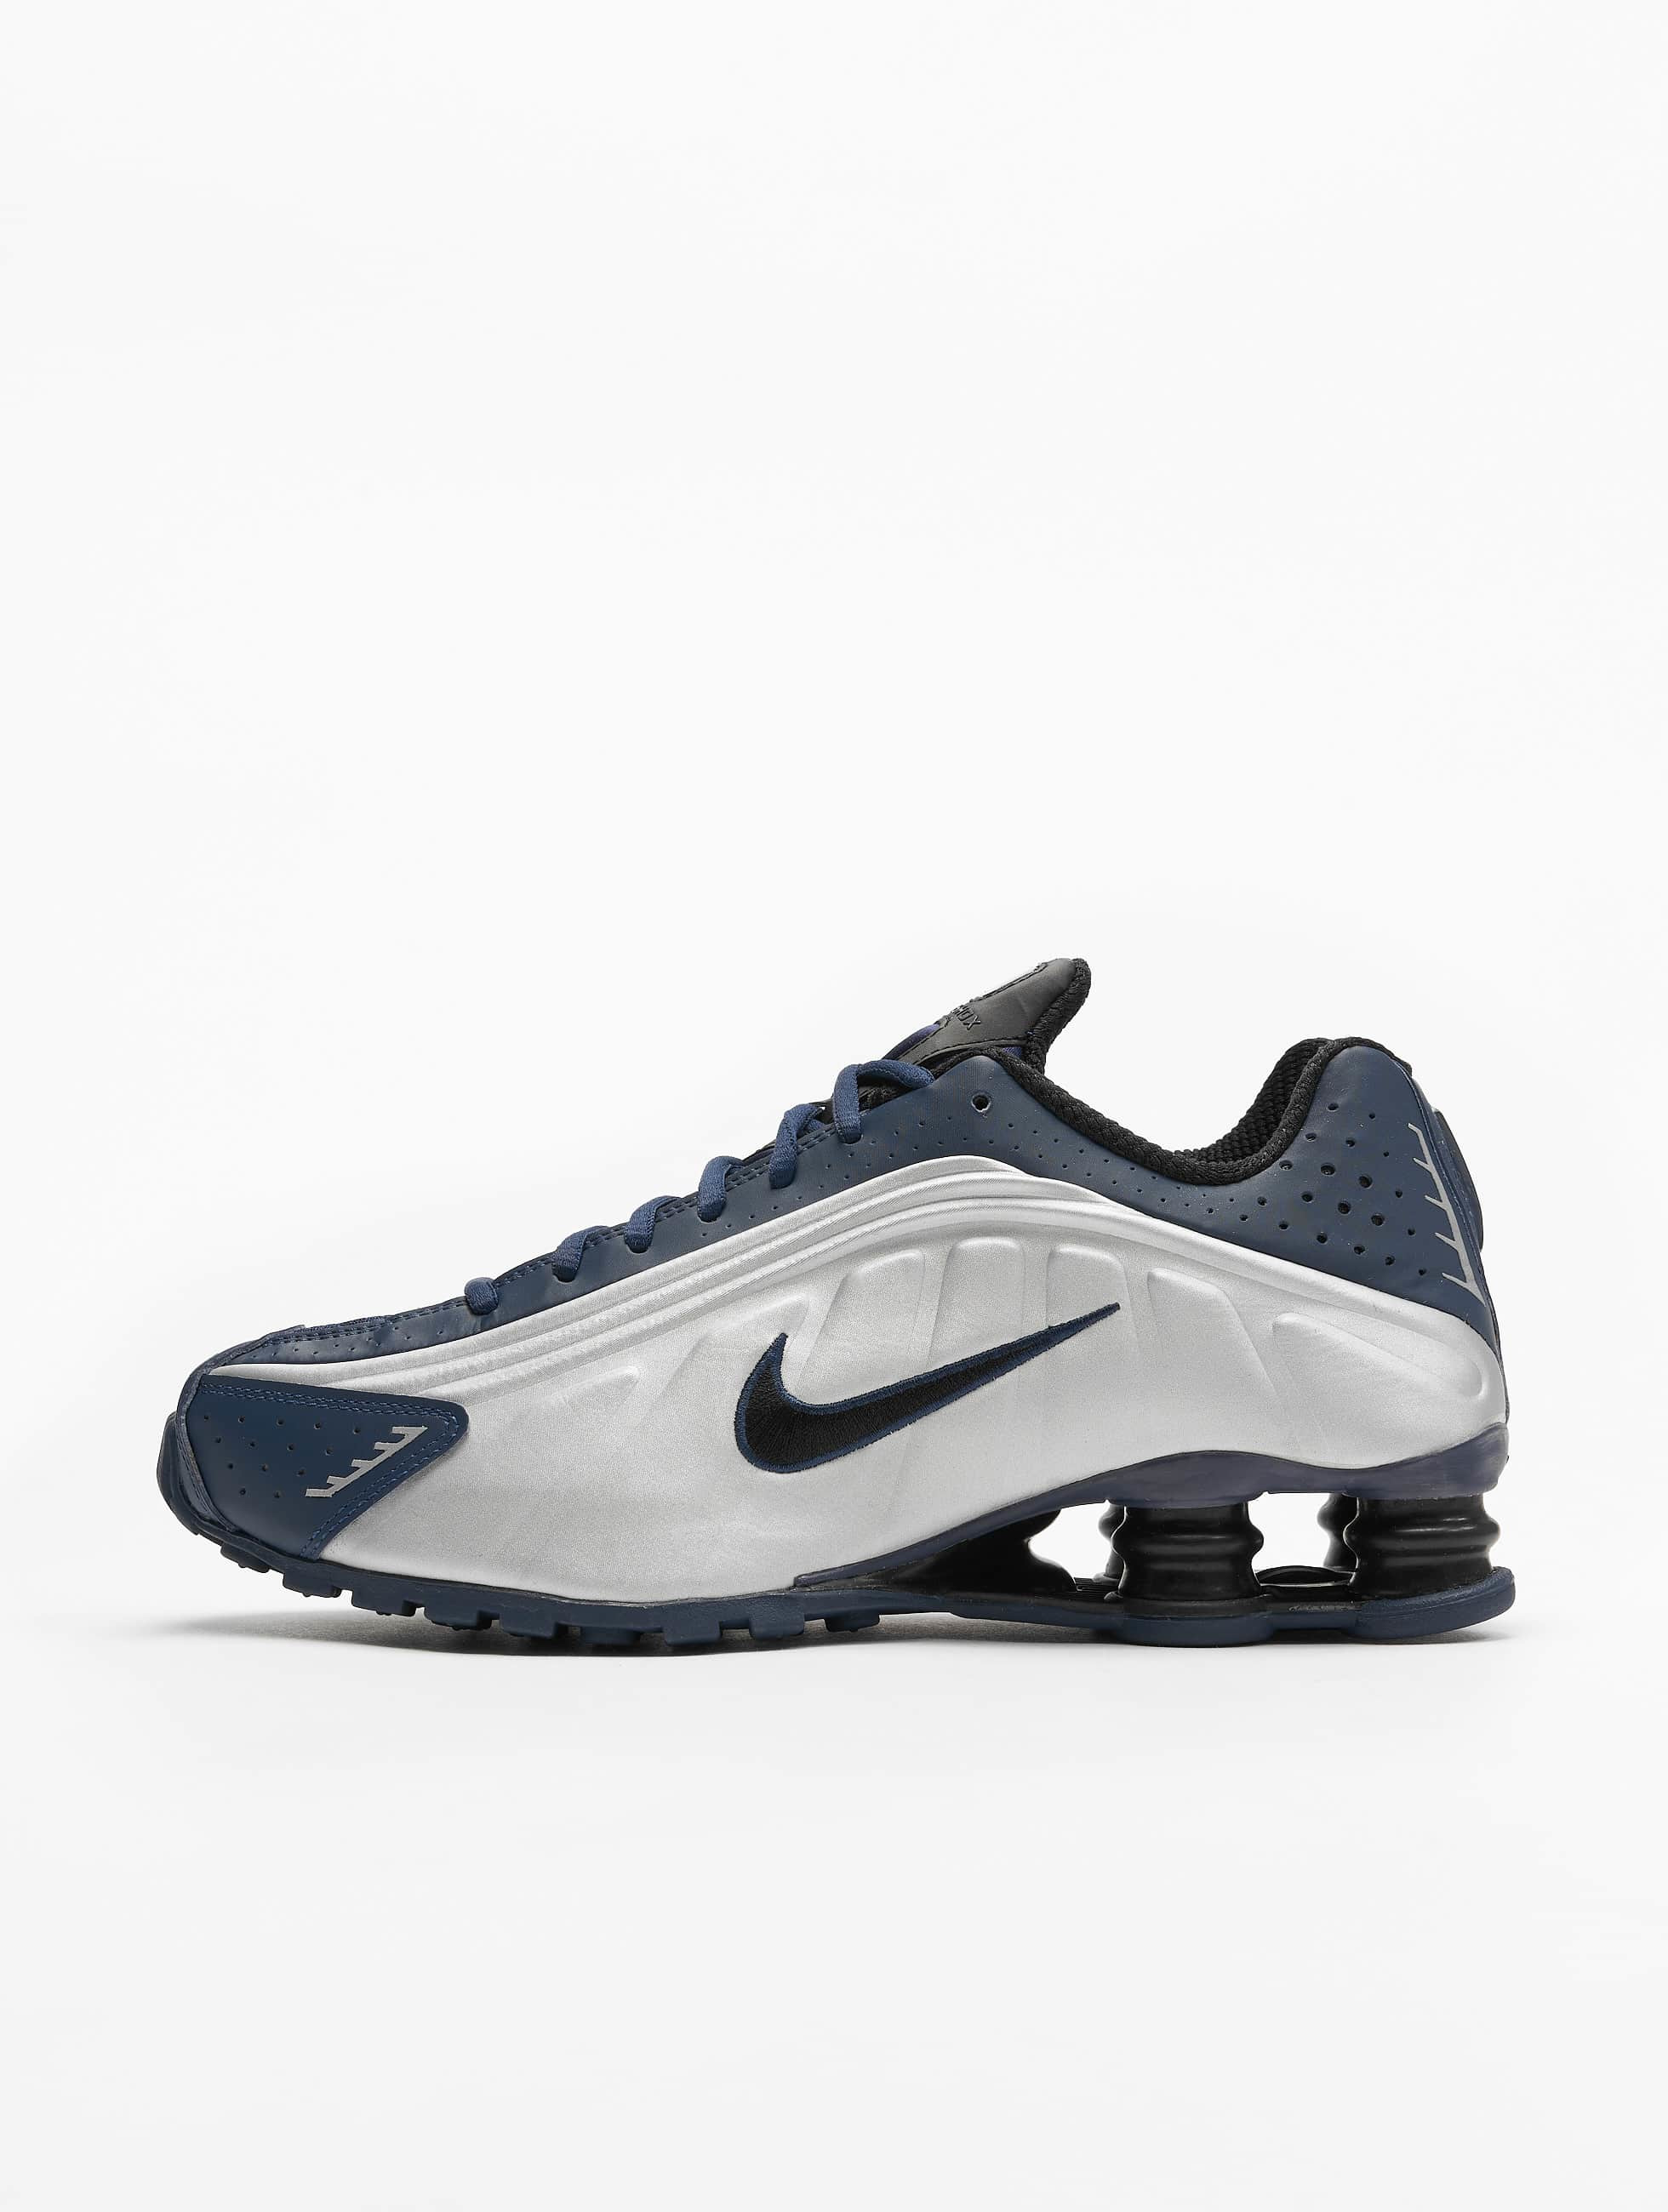 size 40 promo codes outlet store Nike Shox R4 Sneakers Midnight Navy/Black/Metallic Silvern